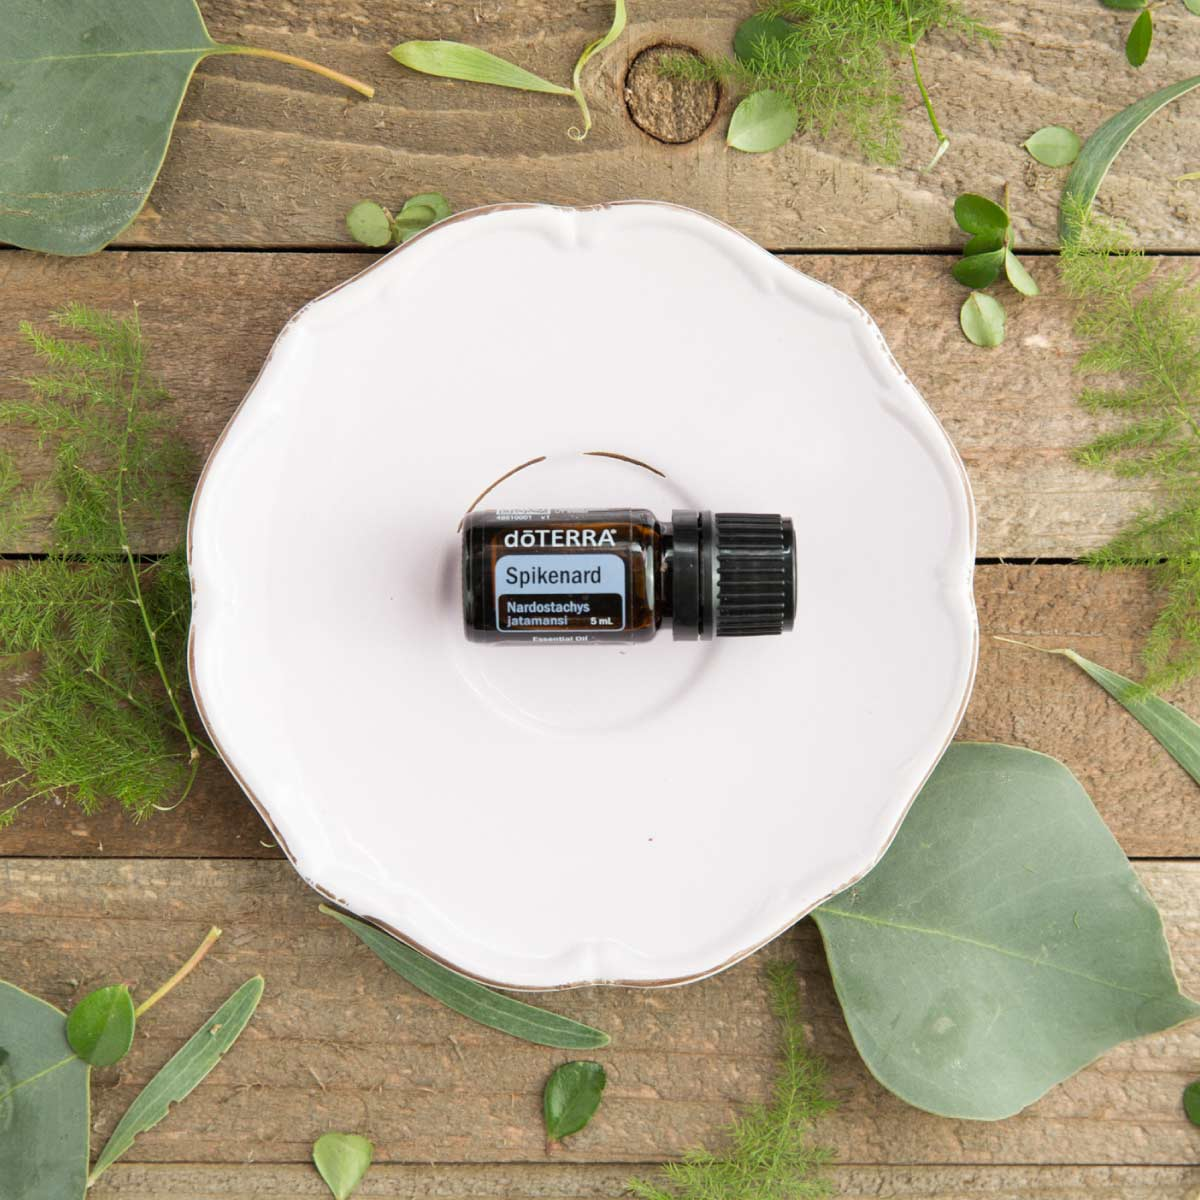 Spikenard essential oil bottle on a white plate surrounded by green leaves. How do you use Spikenard essential oil? Spikenard essential oil can be used to create a relaxing atmosphere or to soothe the skin.